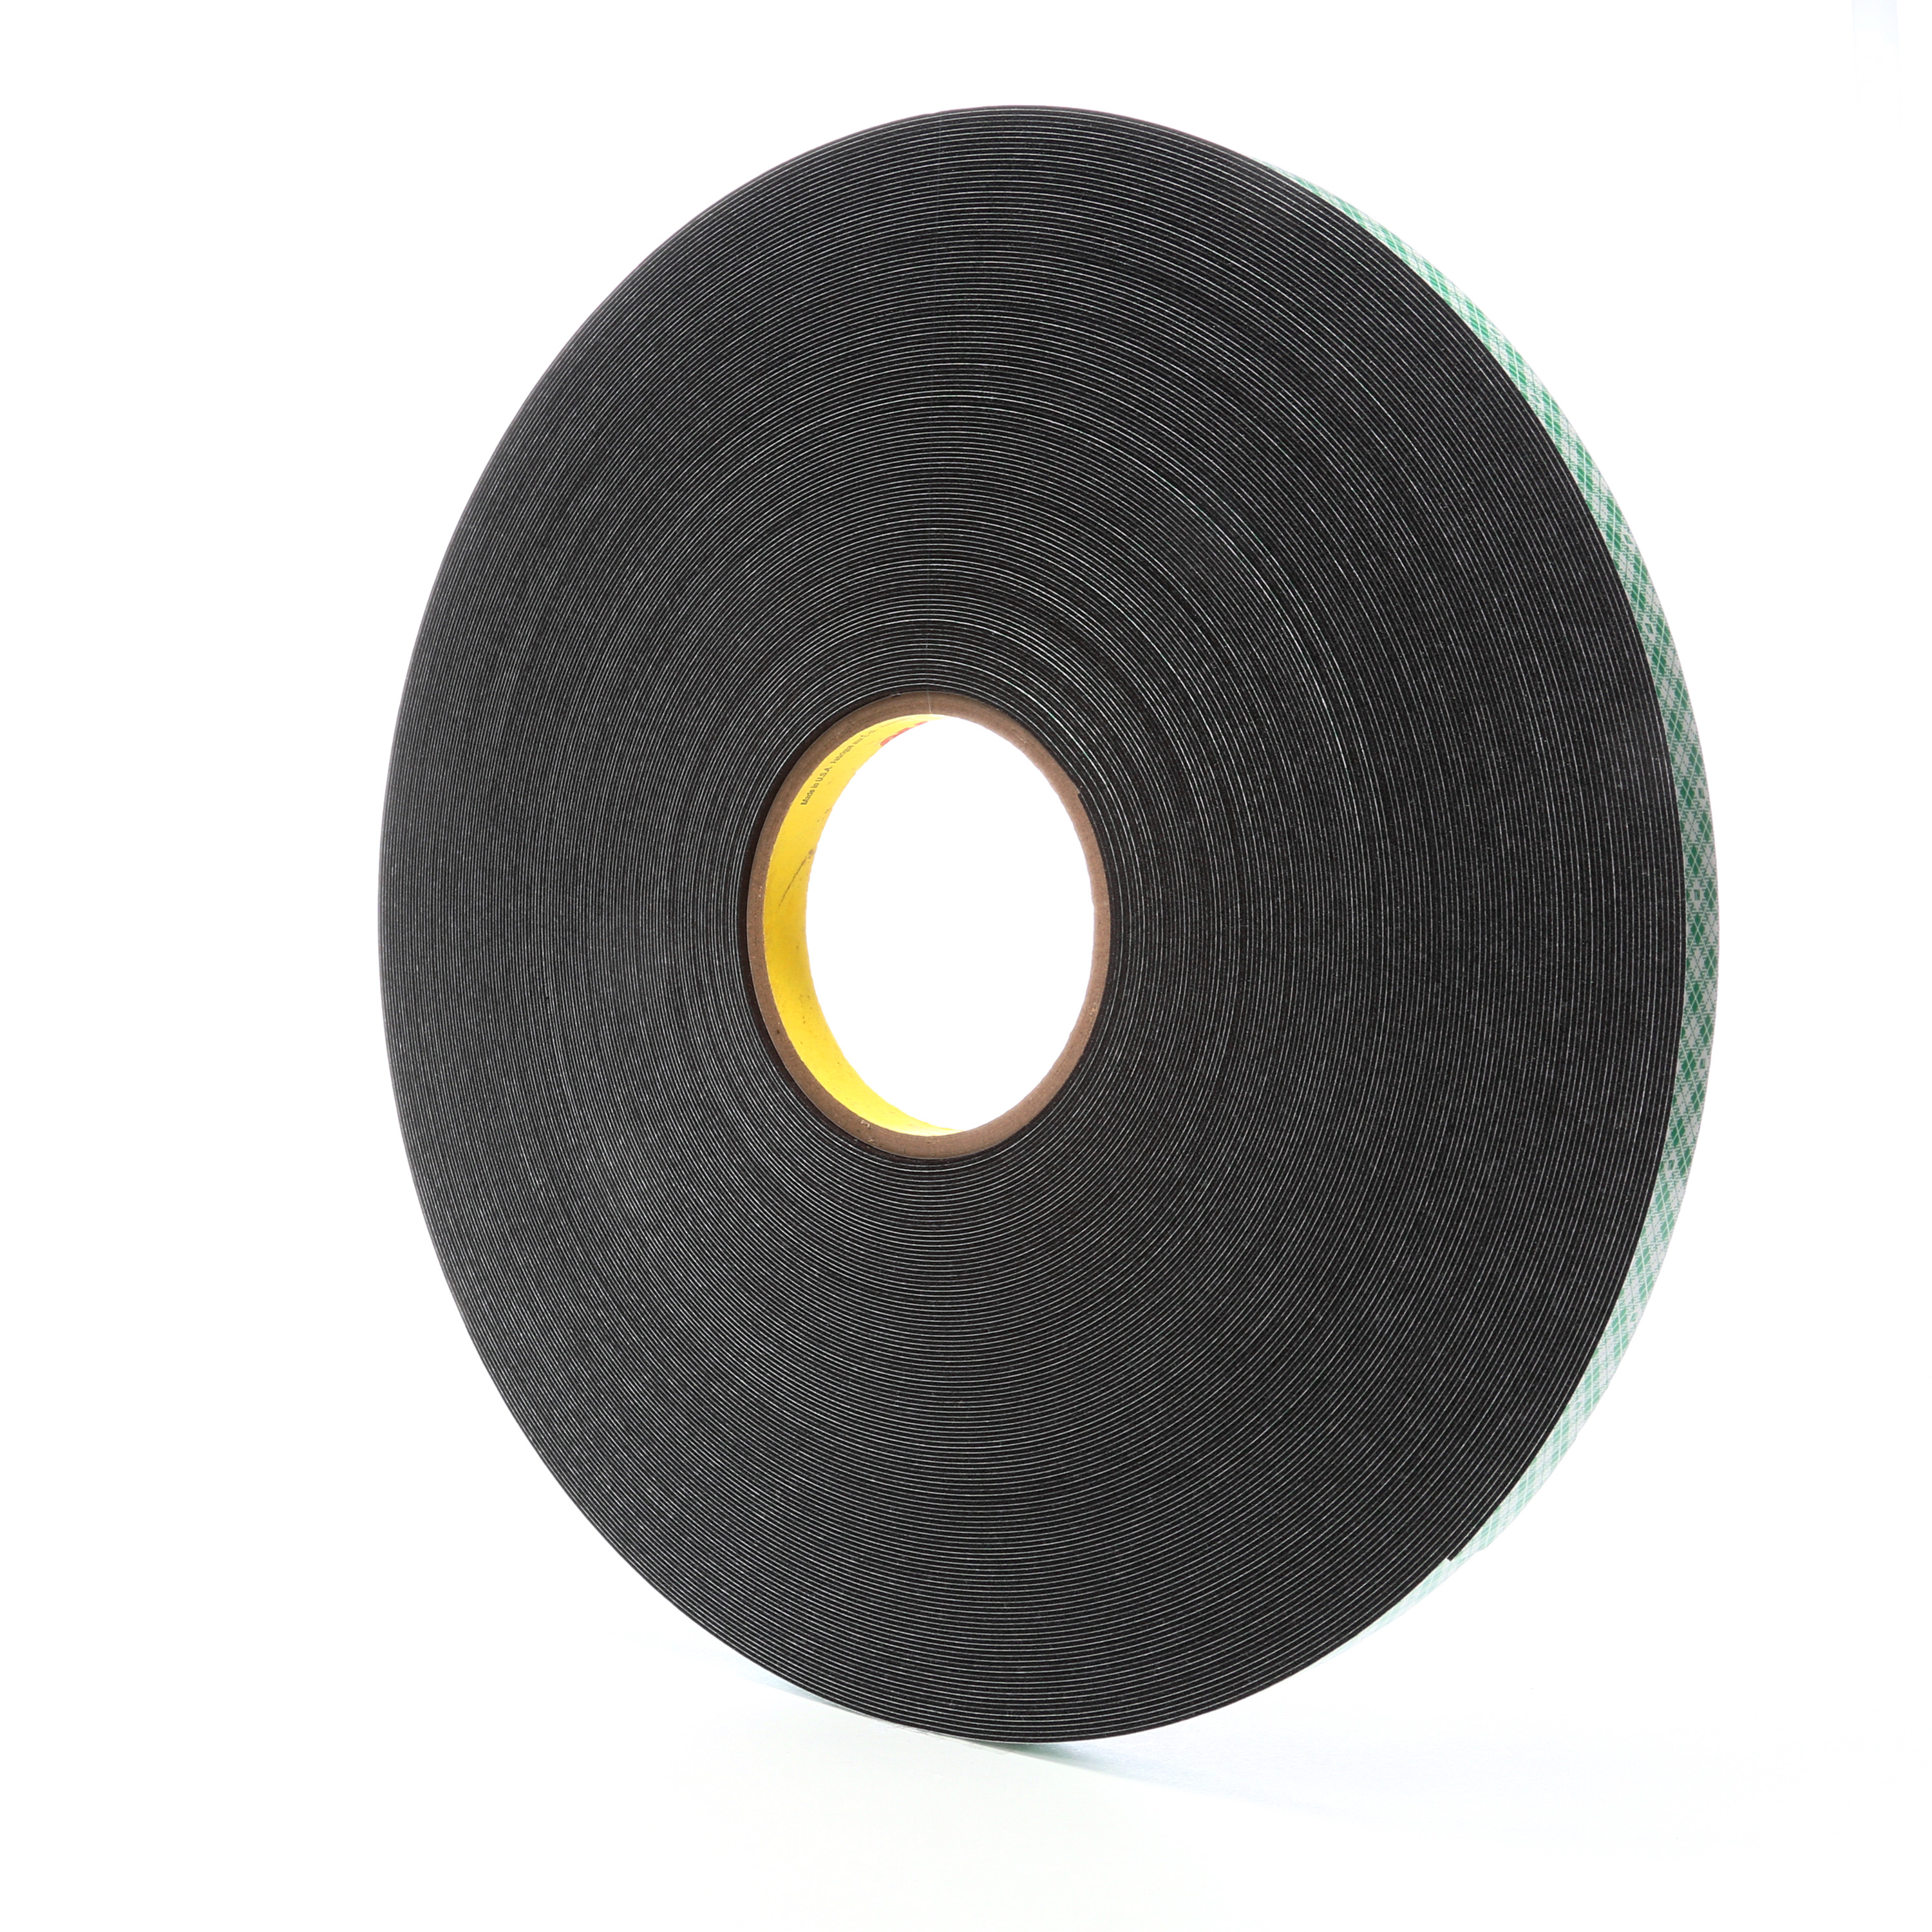 3M™ Double Coated Urethane Foam Tape 4052, Black, 31 mil, Roll, Config